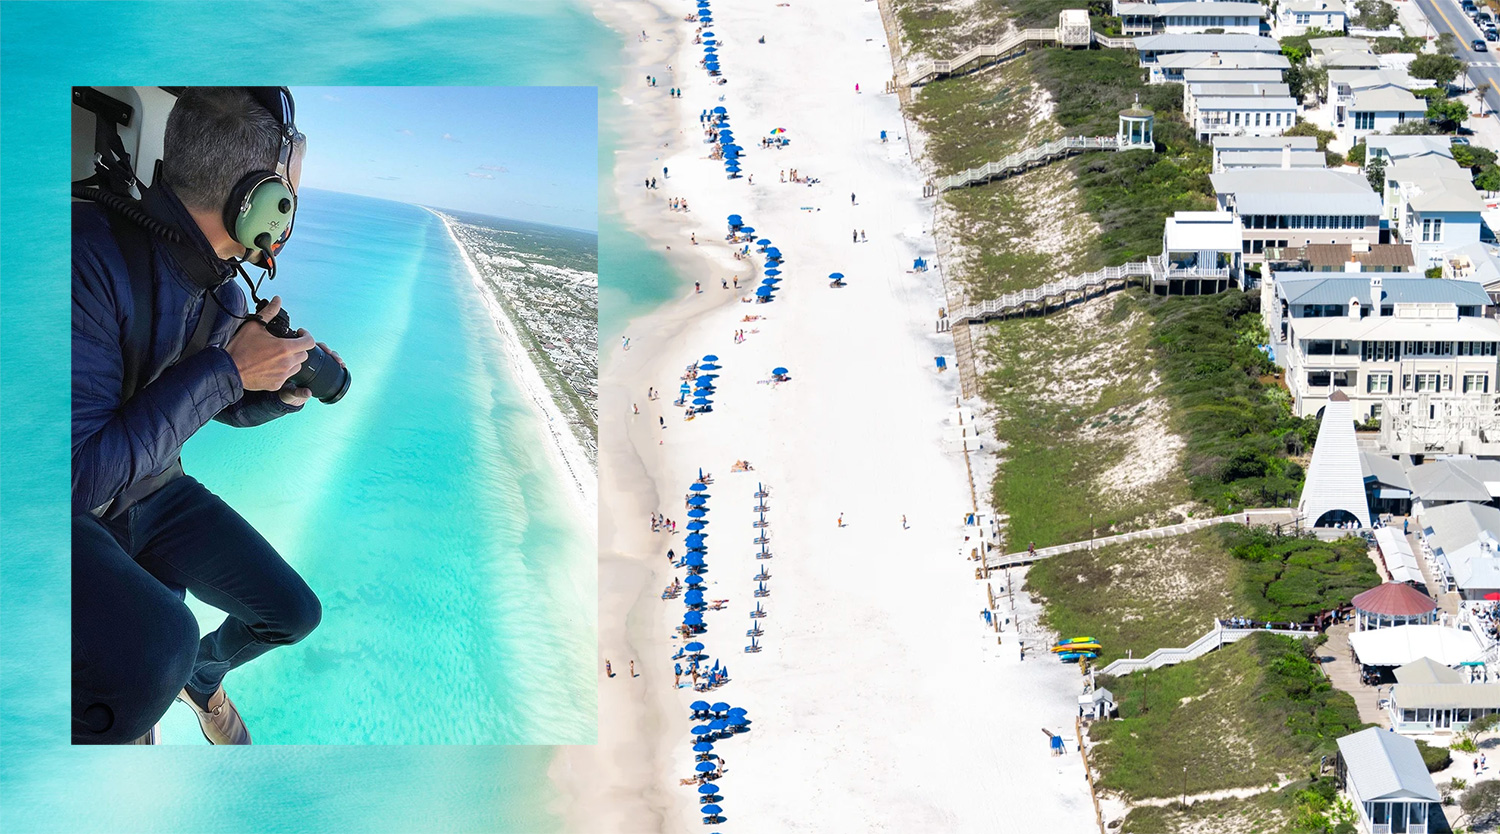 30A Images by Gray Malin